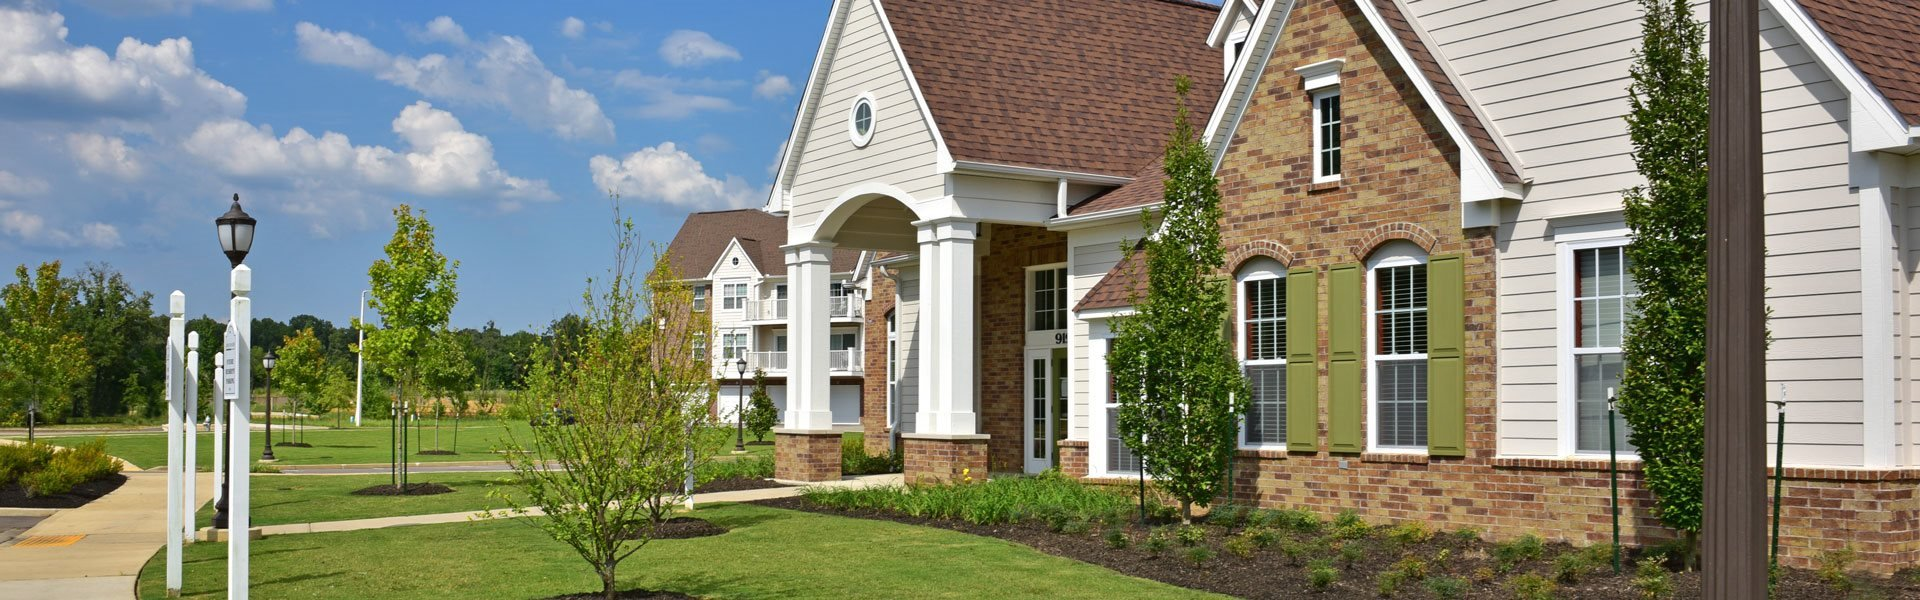 Large Private Patios at Irene Woods Apartments, Collierville, Tennessee